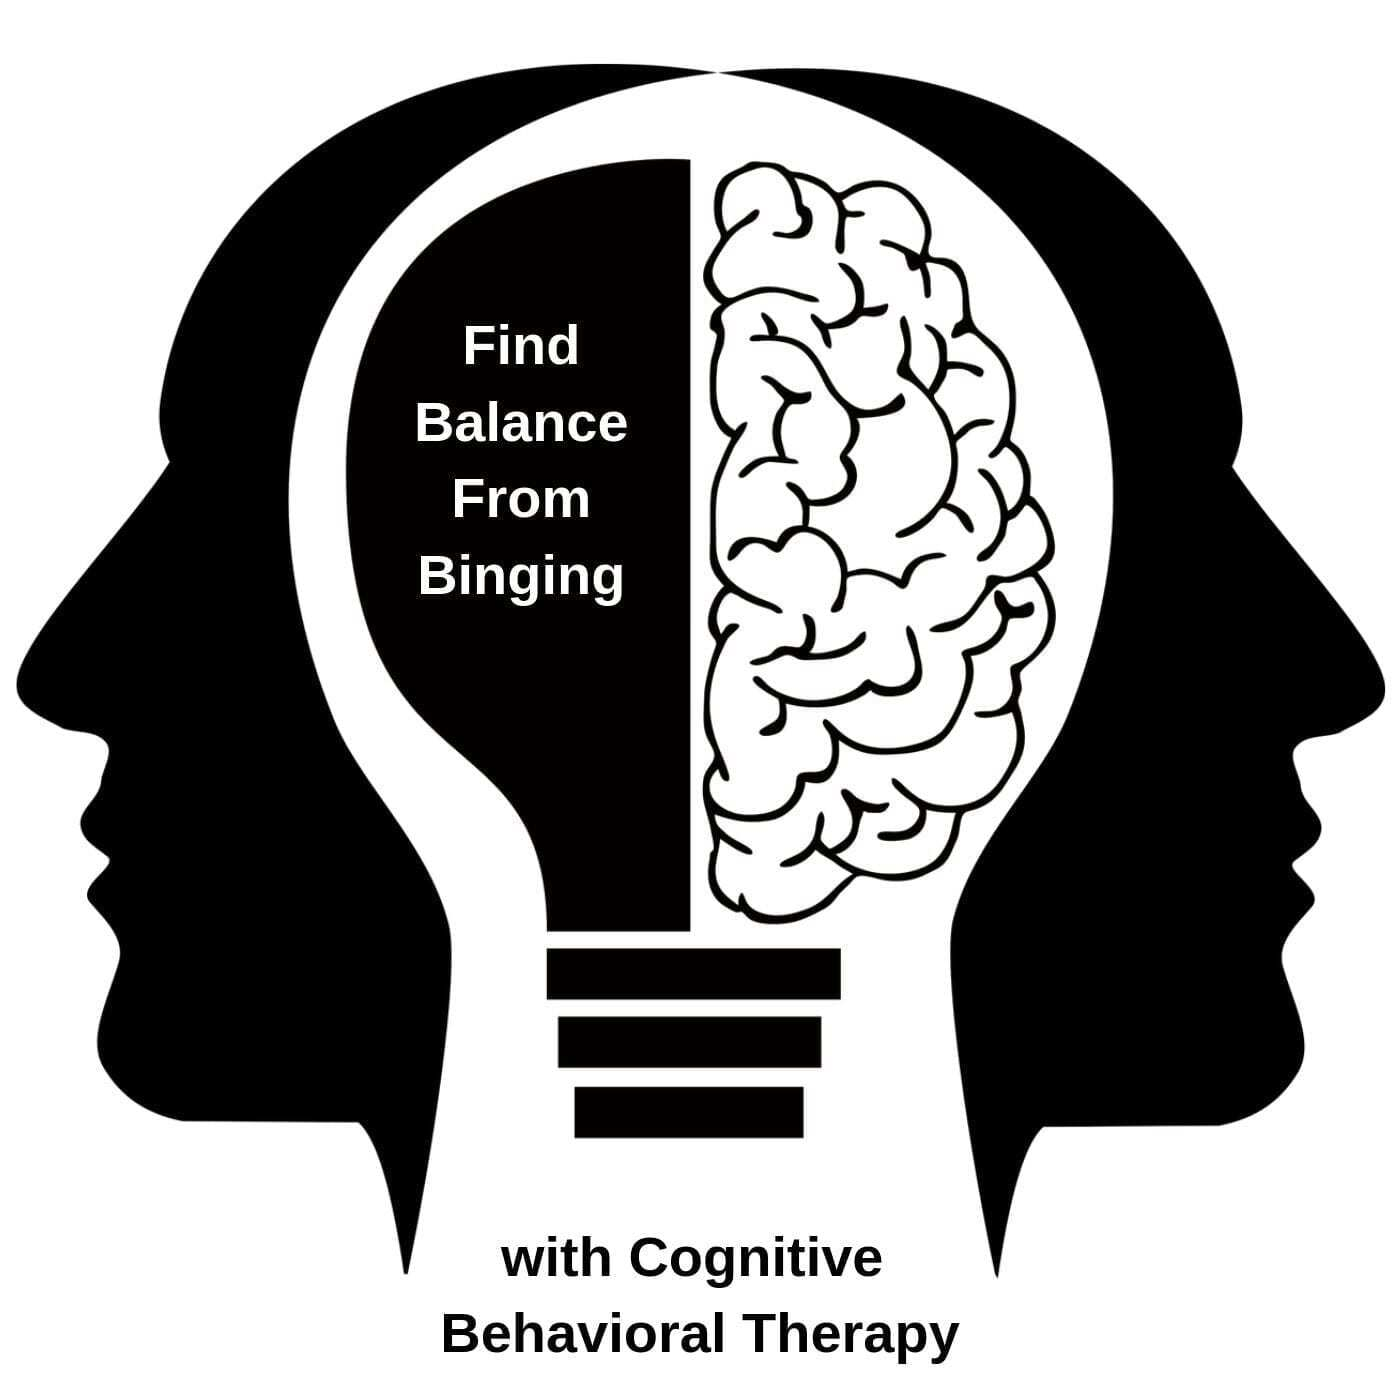 picture of brain with quote in the brain saying find balance from binging as a way to talk about Binge Eating Treatment: Cognitive Behavioral Therapy